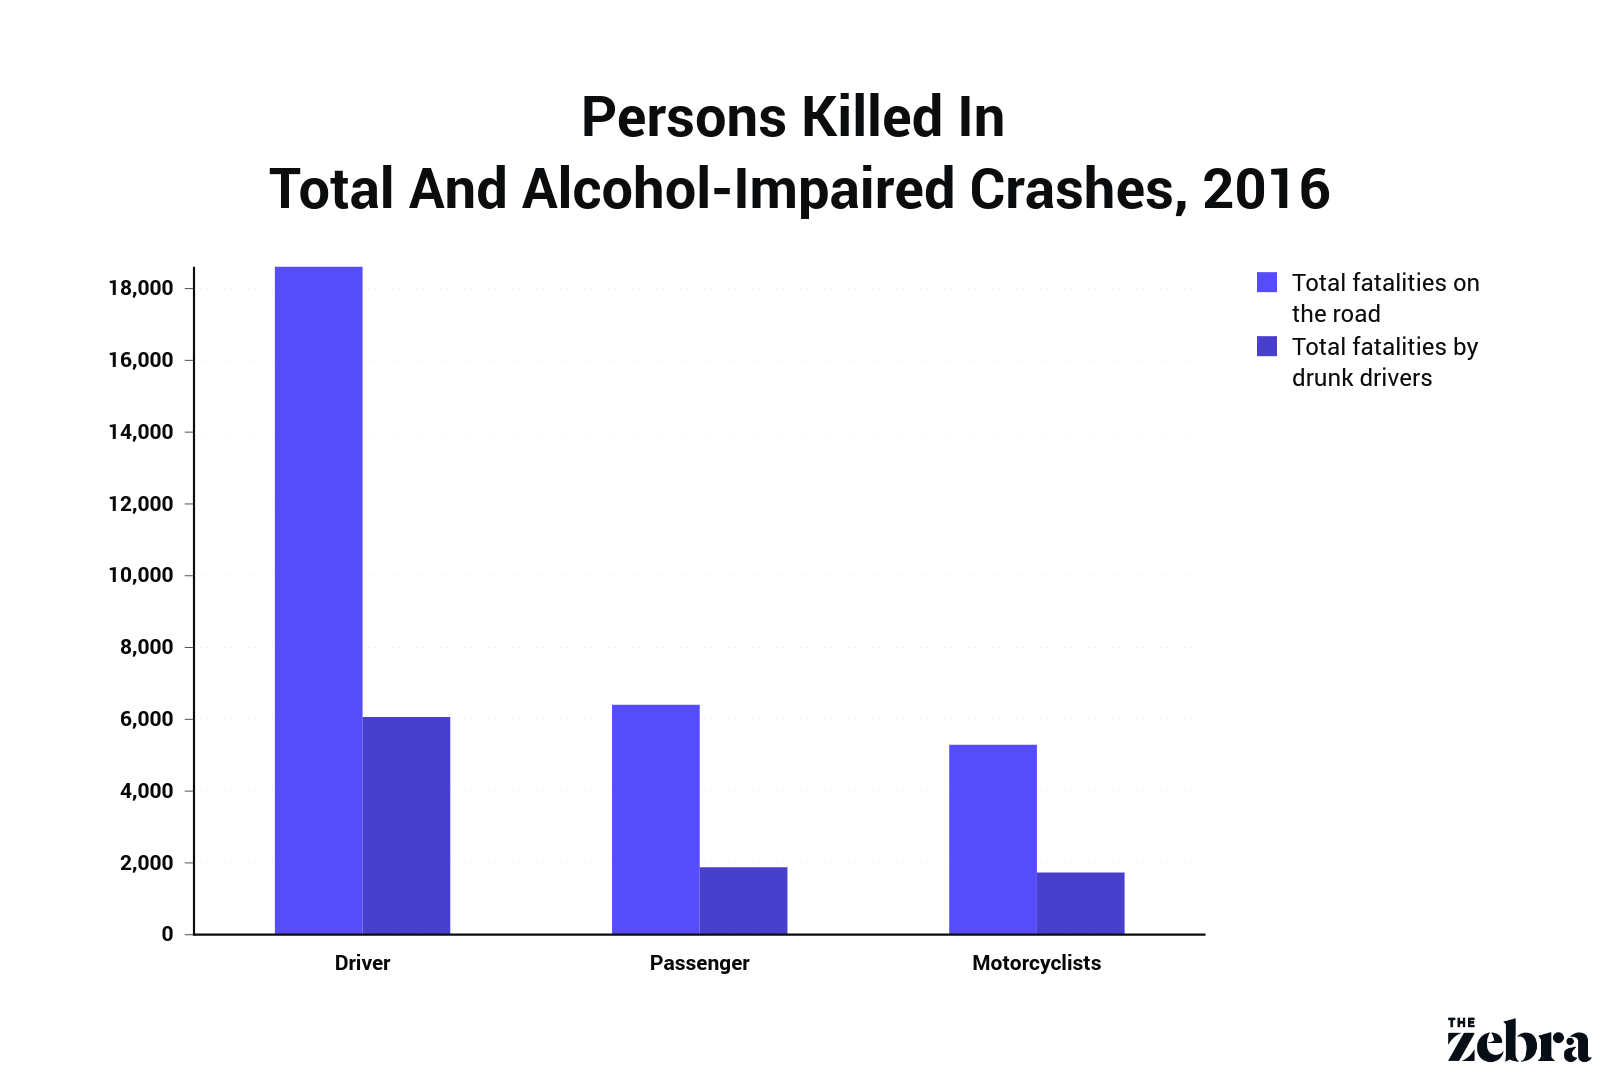 Persons Killed In Total And Alcohol-Impaired Crashes